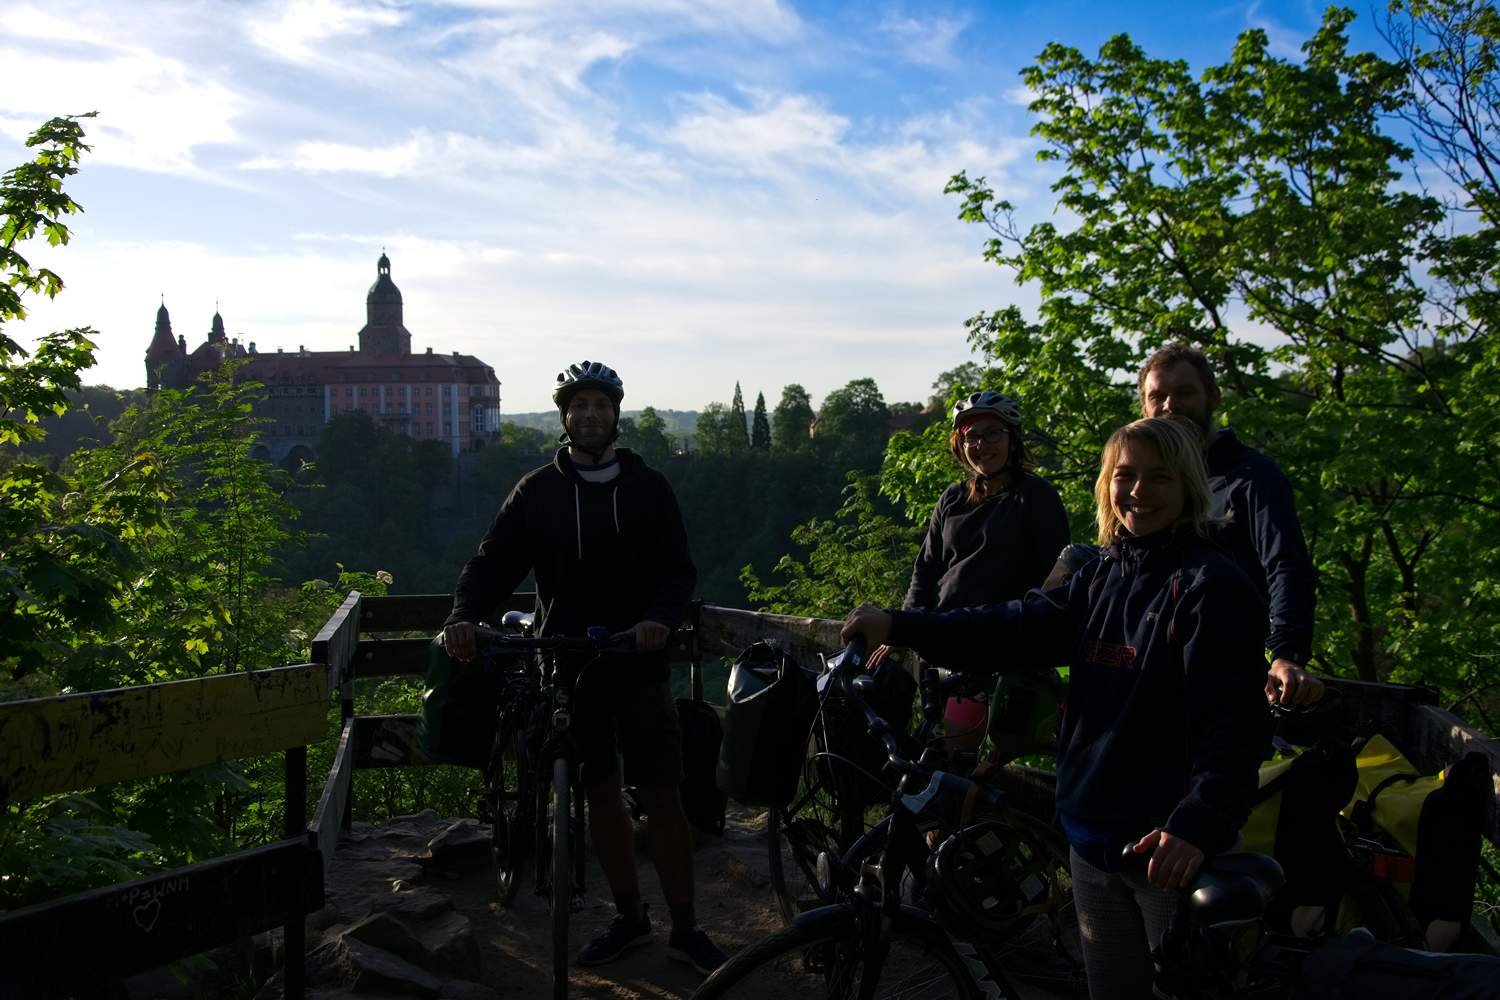 castle ksiaz by bike